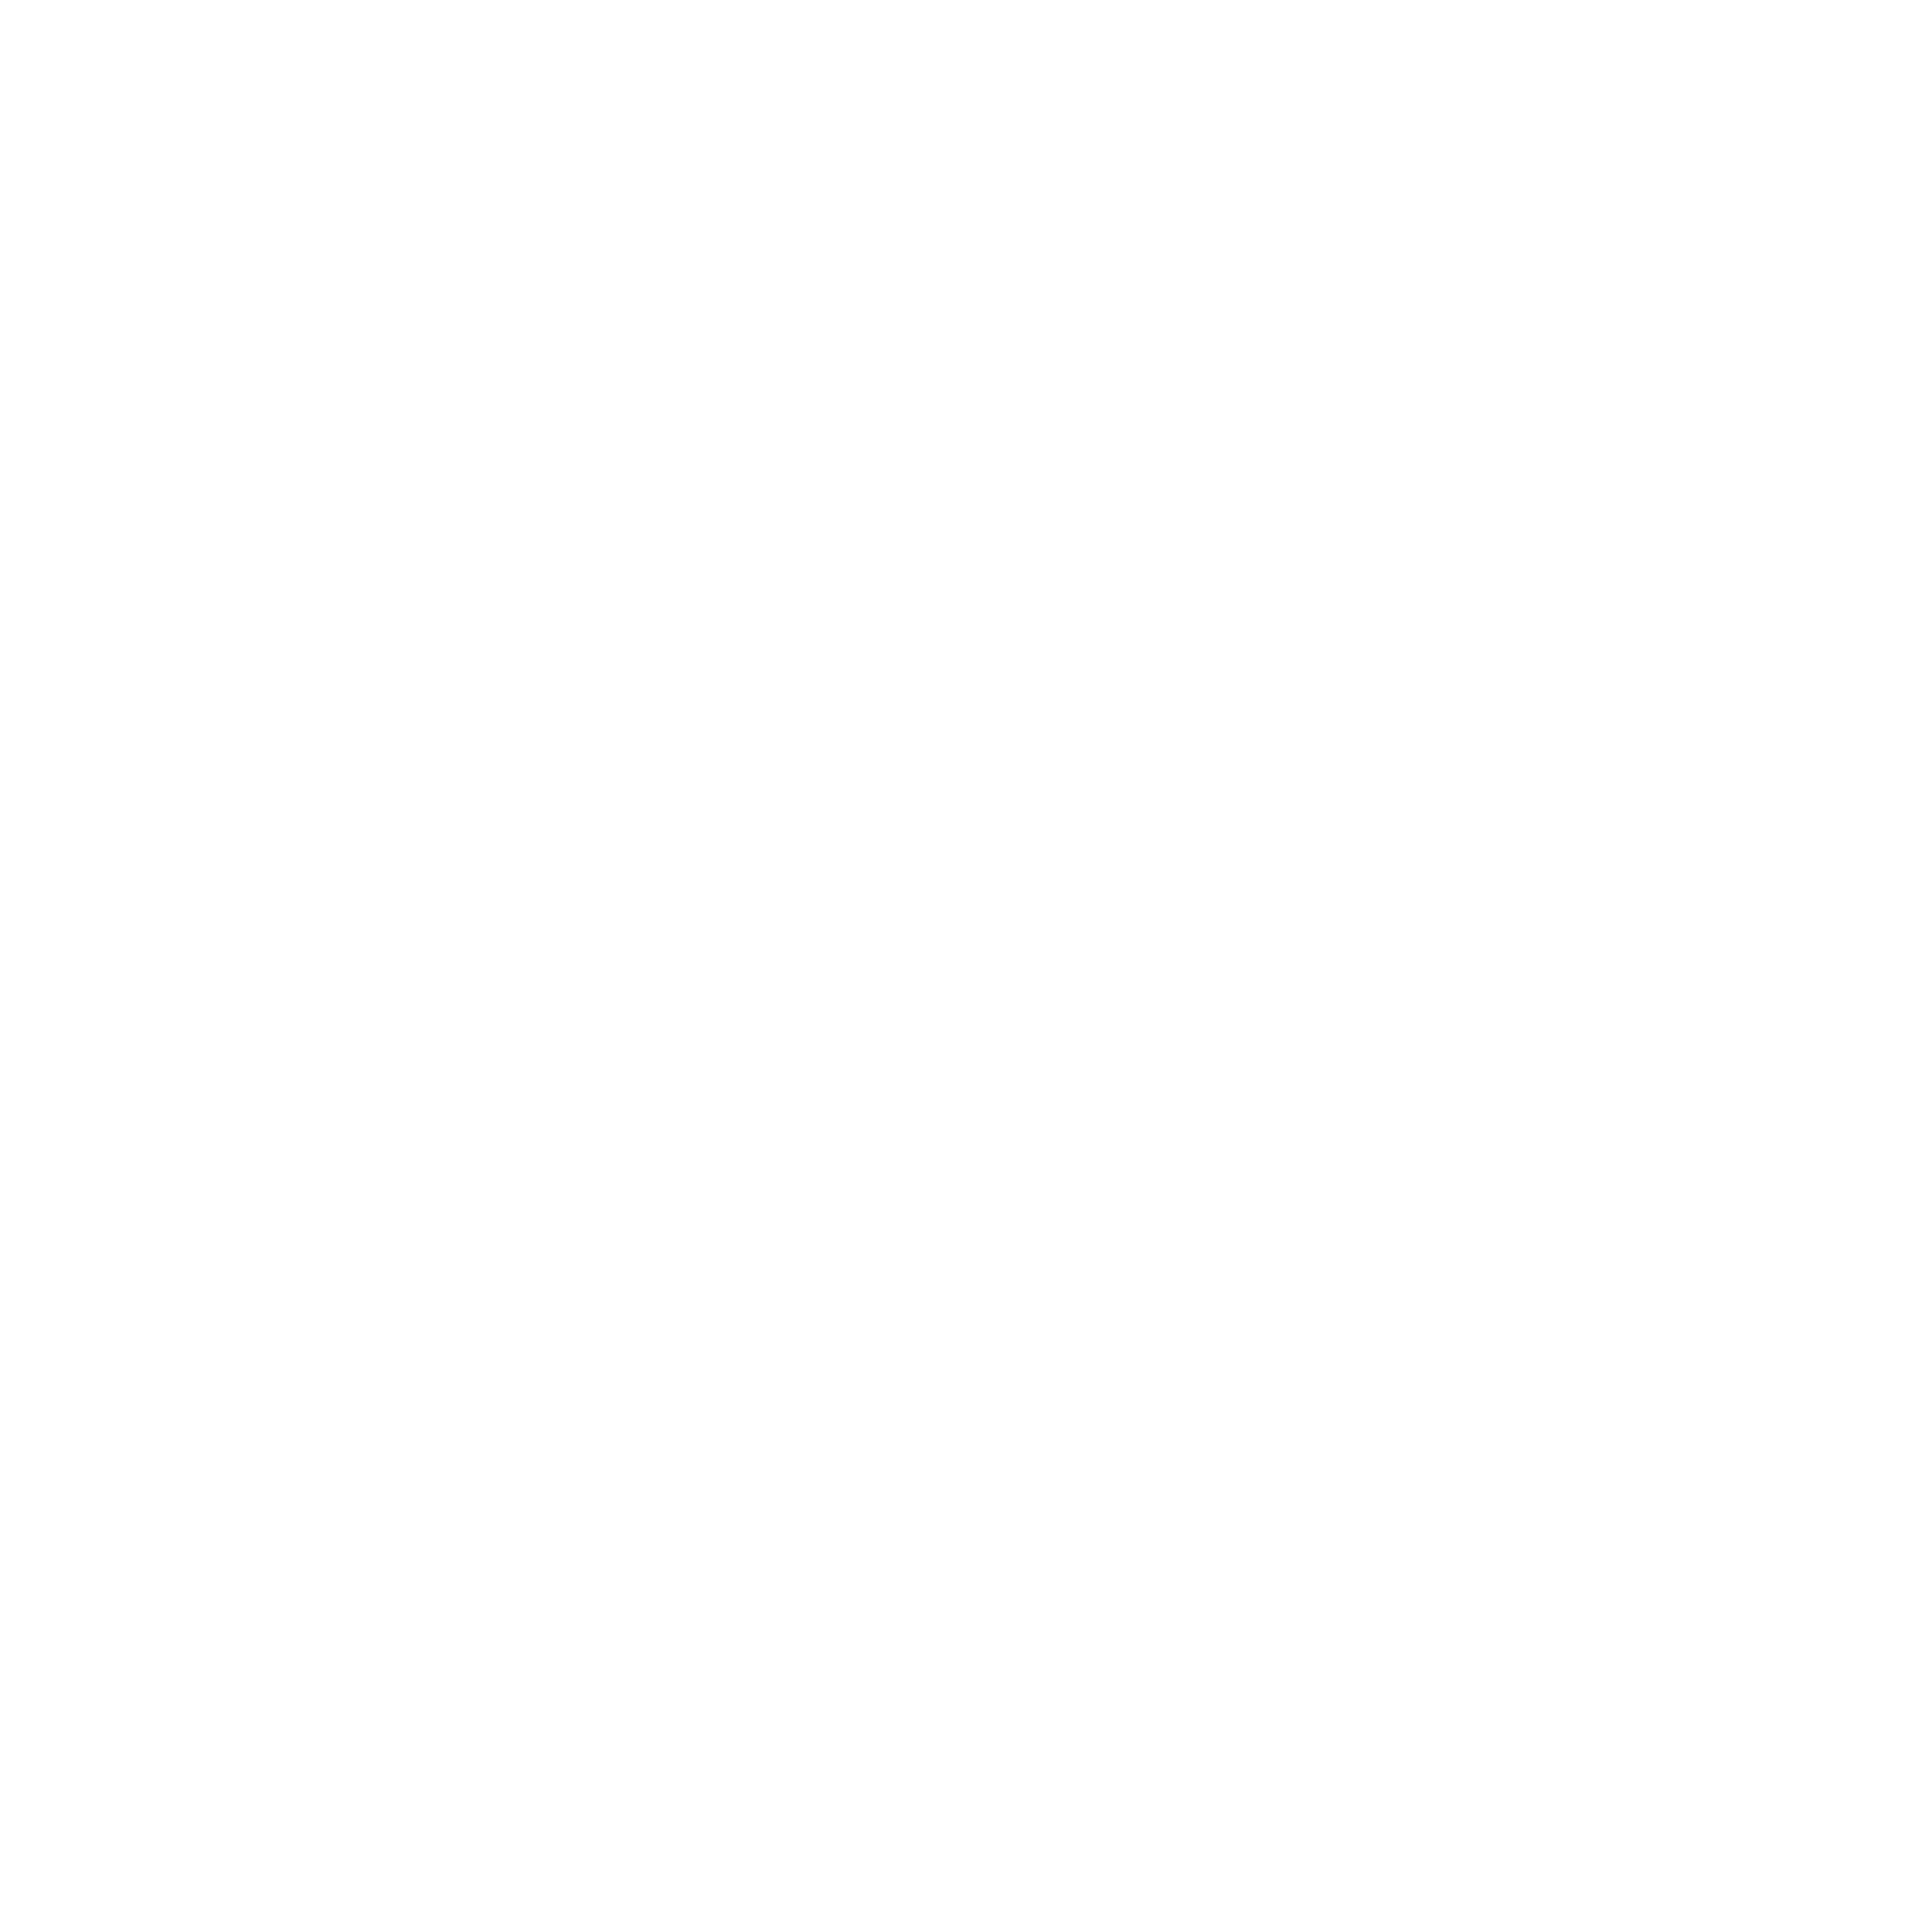 Cat Crazy logo